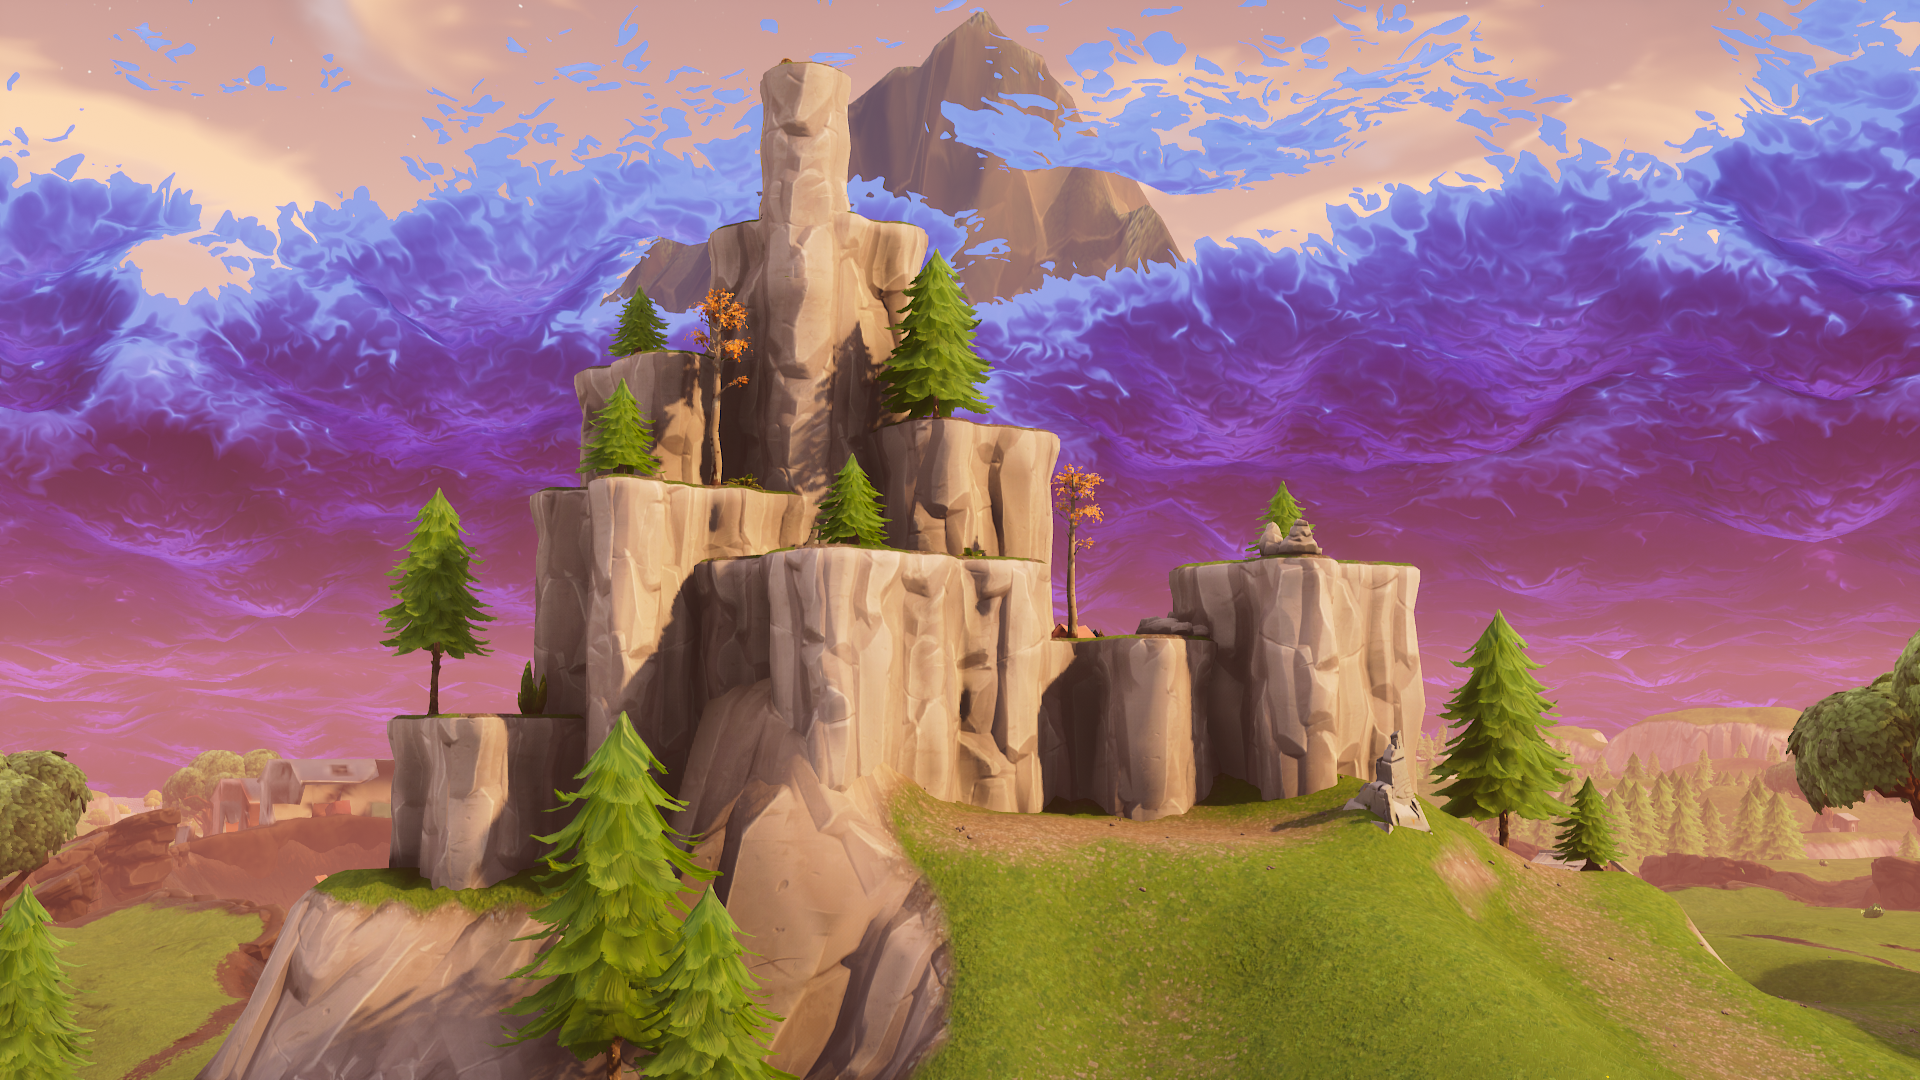 Thumbnail Fortnite Background Hd Png.